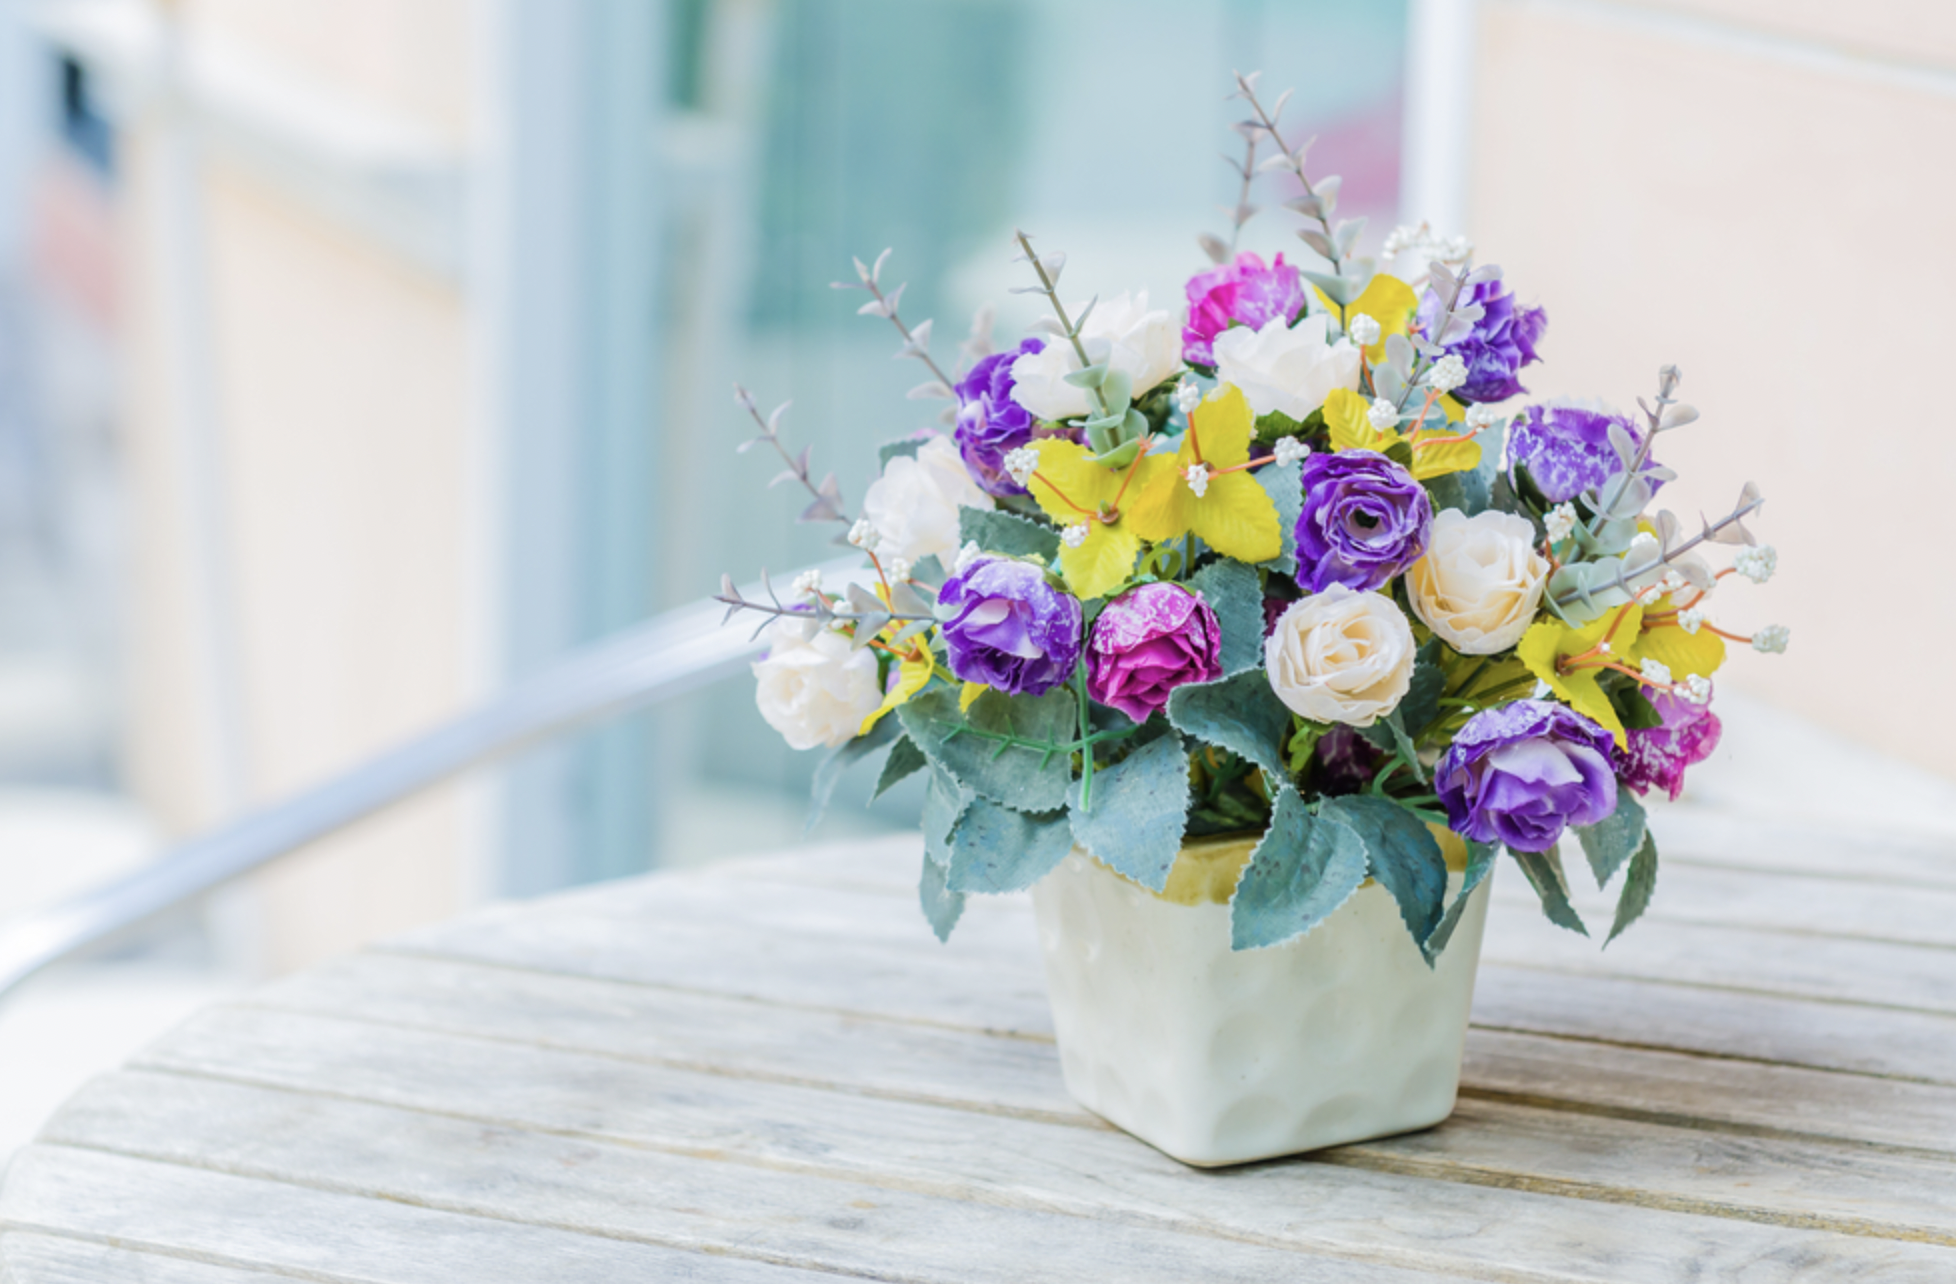 What makes flowers the best surprise?